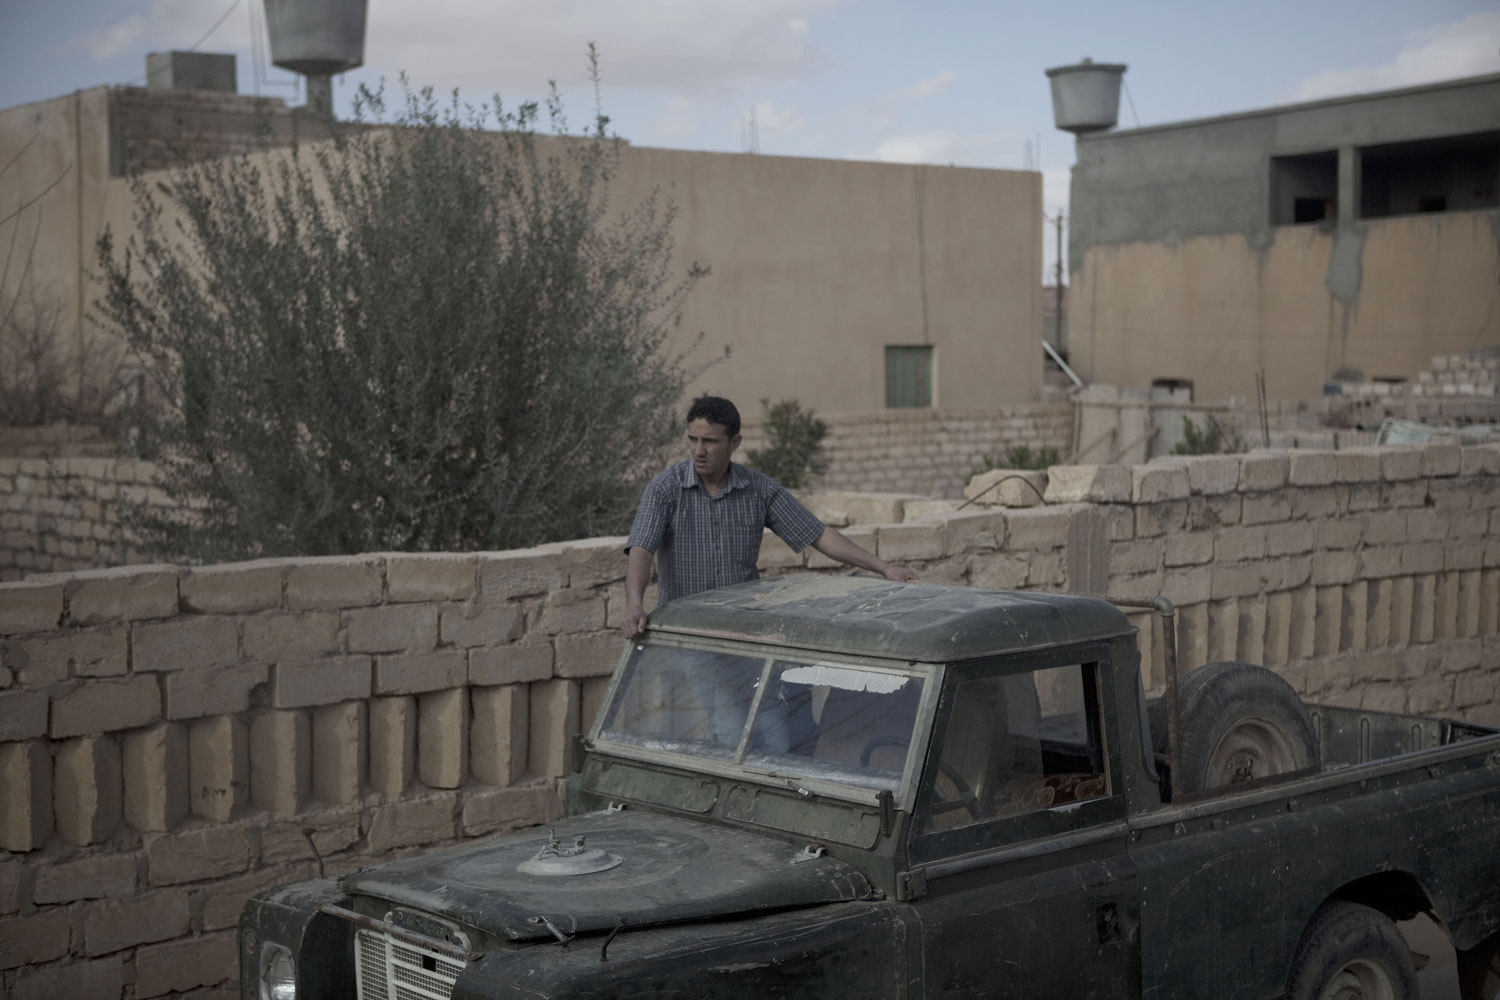 The outskirts of the demonstration in Ban-Waled, March 23, 2011.